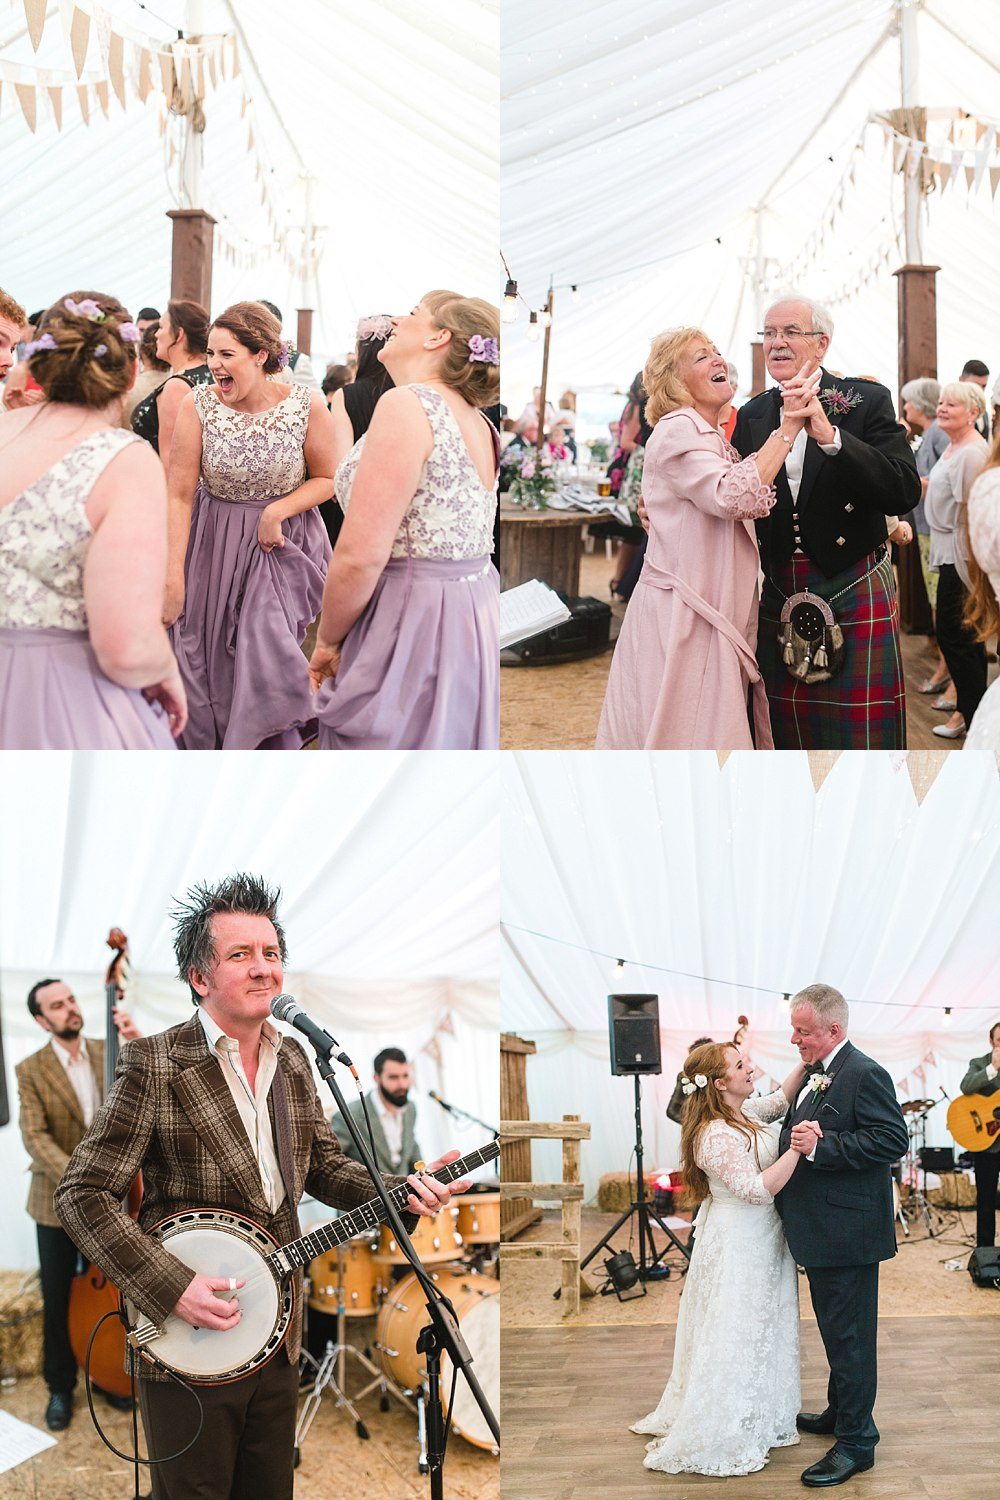 fun and relaxed wedding photography Glasgow 3-1.jpg